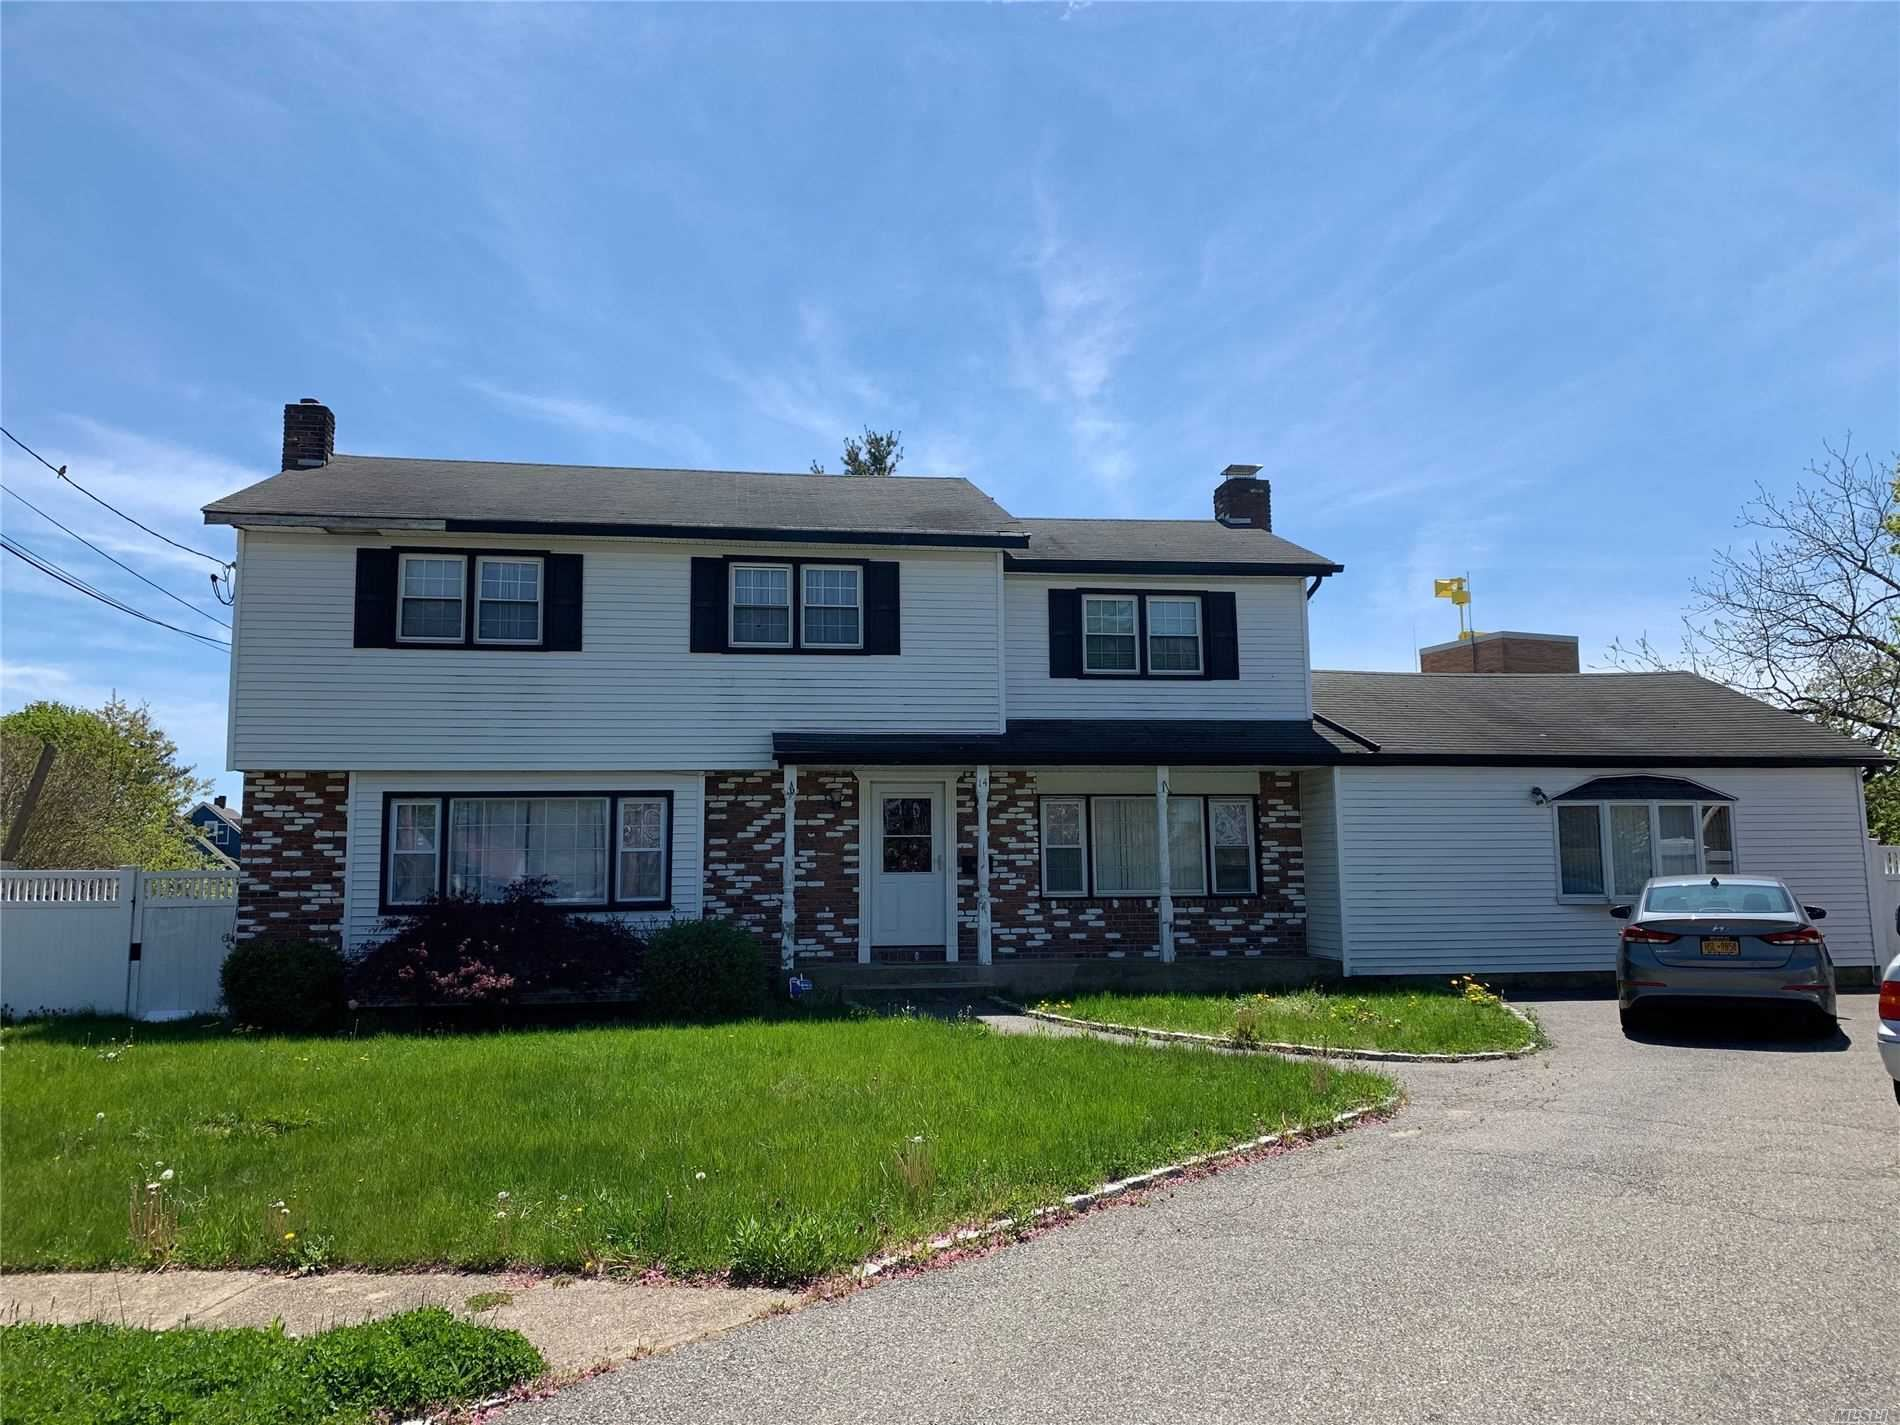 14 Lincoln Court, Copiague, NY 11726 - MLS#: 3214194